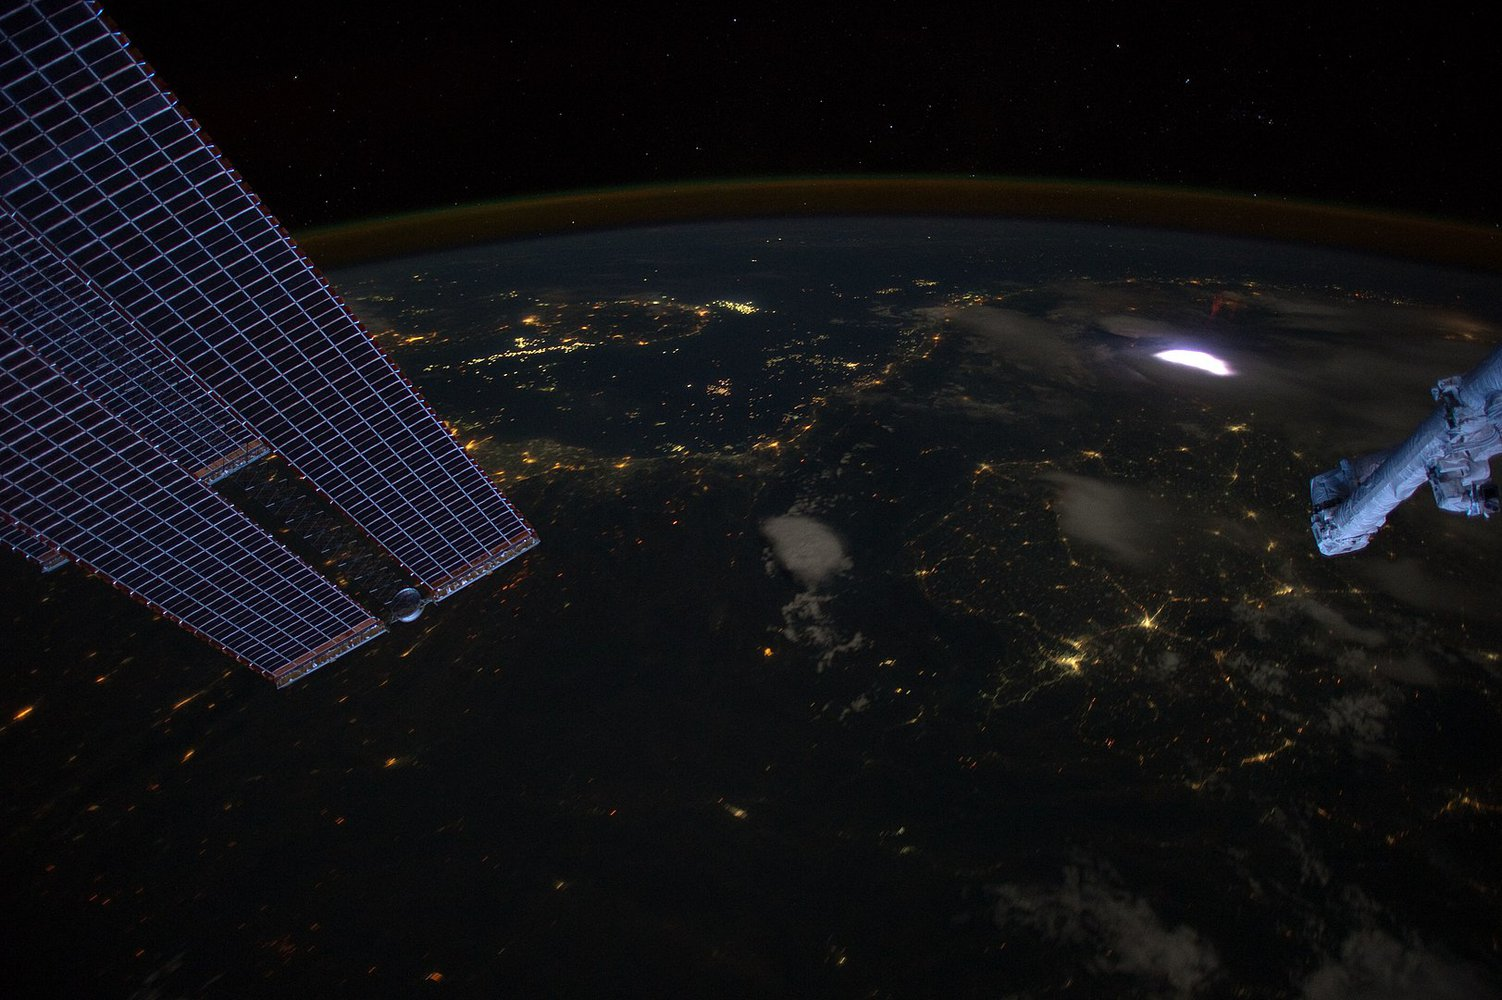 1623px-Sprite_from_ISS.jpg